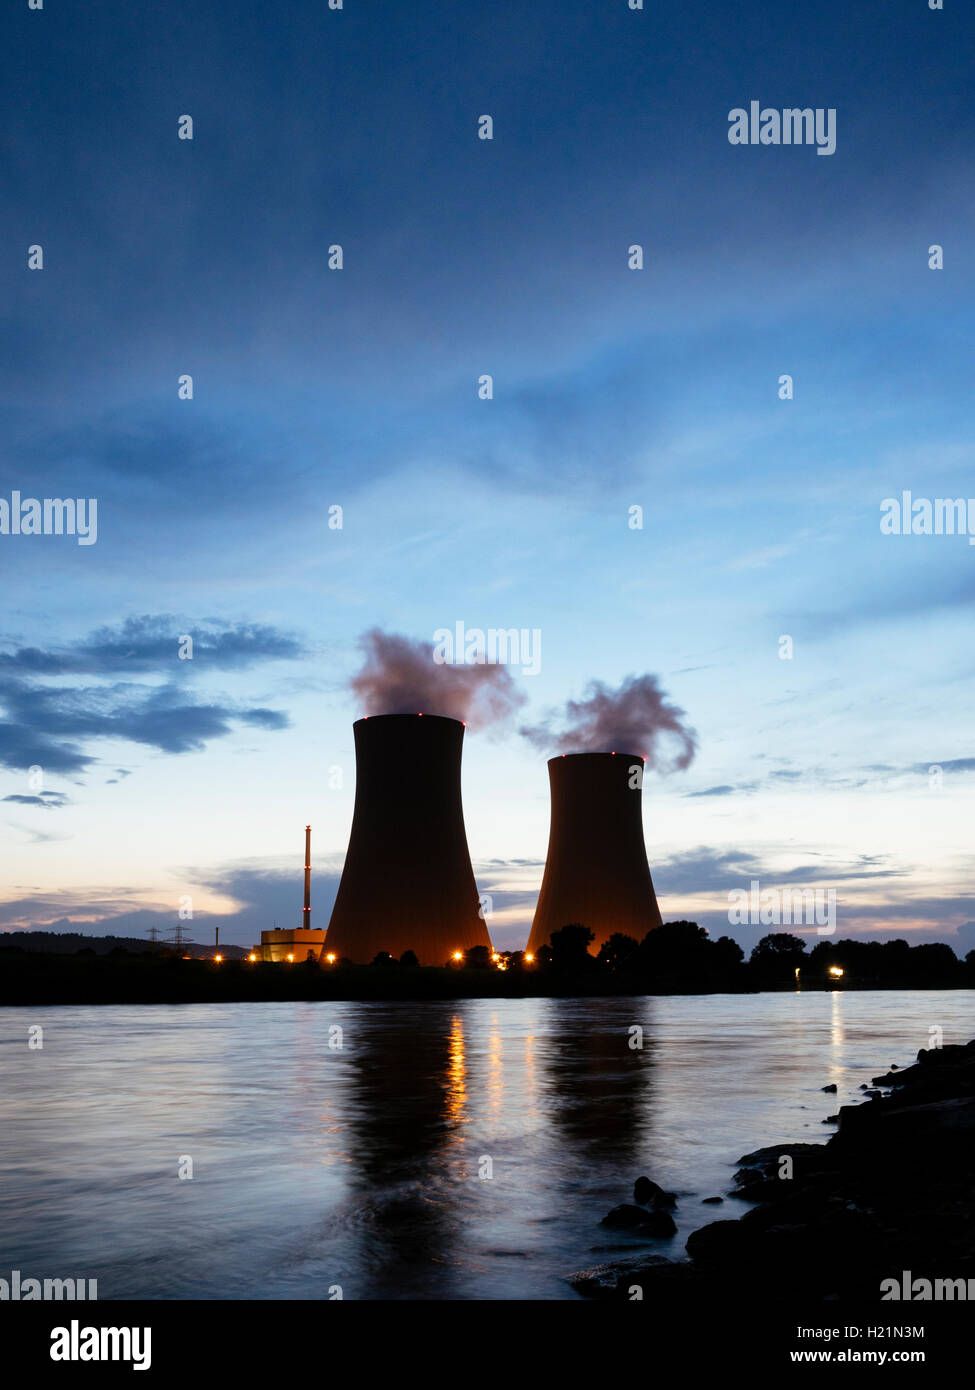 Germany, Lower Saxony, Grohnde, Grohnde Nuclear Power Plant along the Weser river during sunset - Stock Image